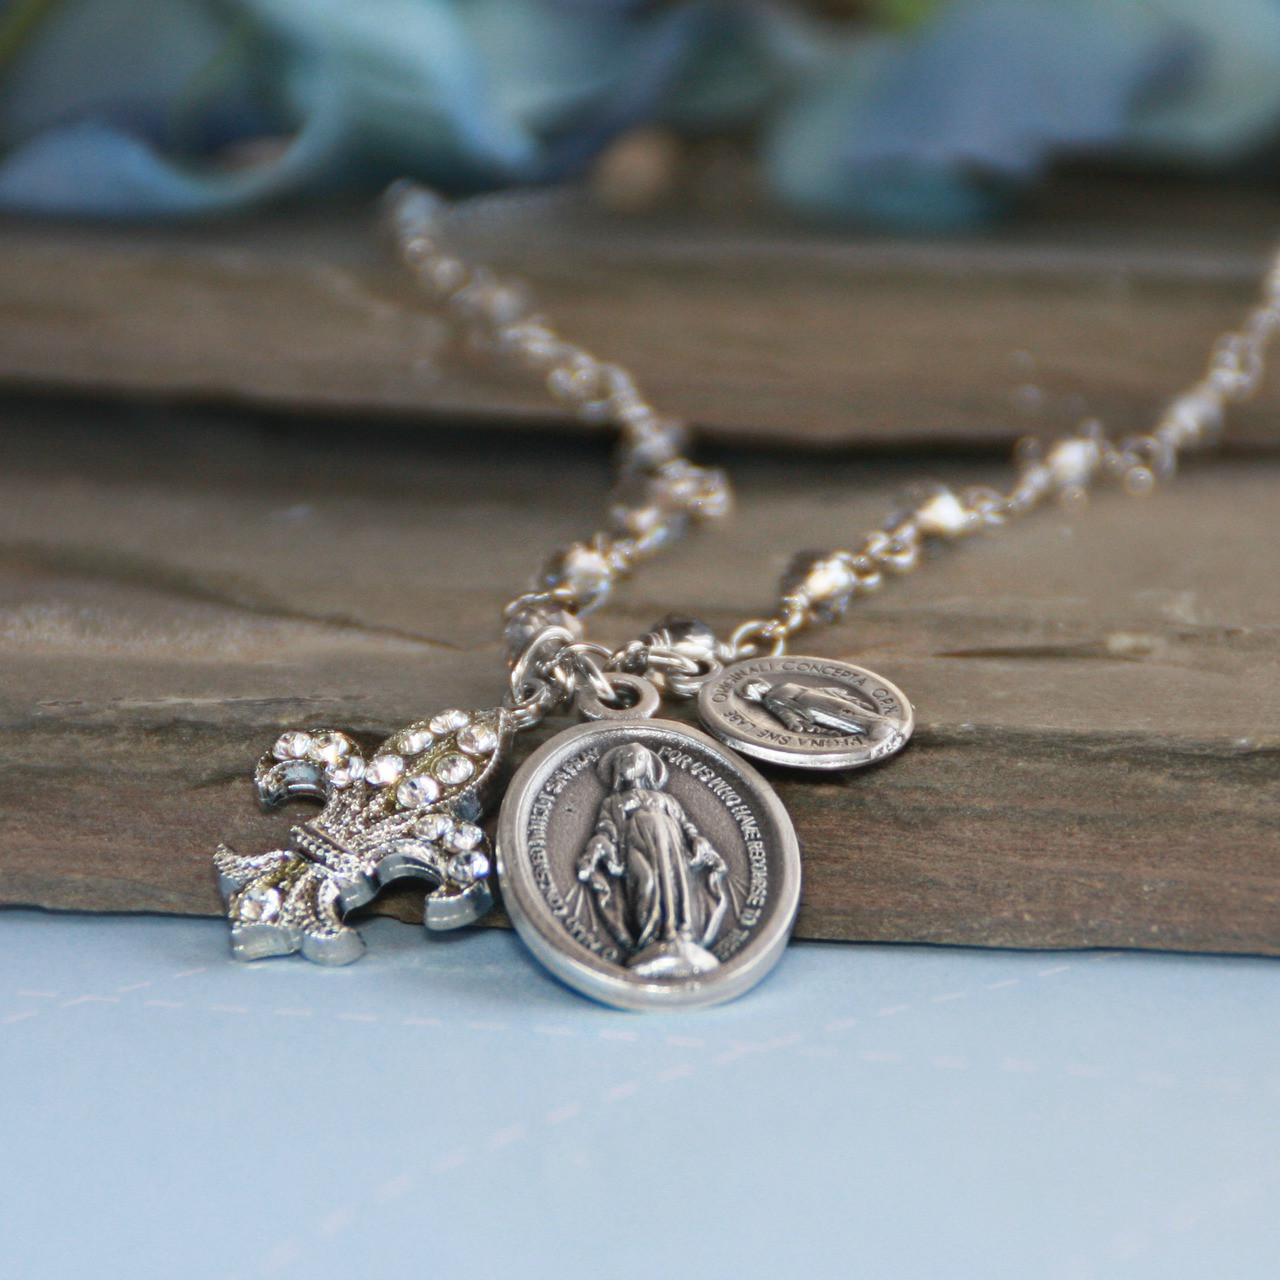 IN-545  Mary Medals and Fleur de Lis Necklace